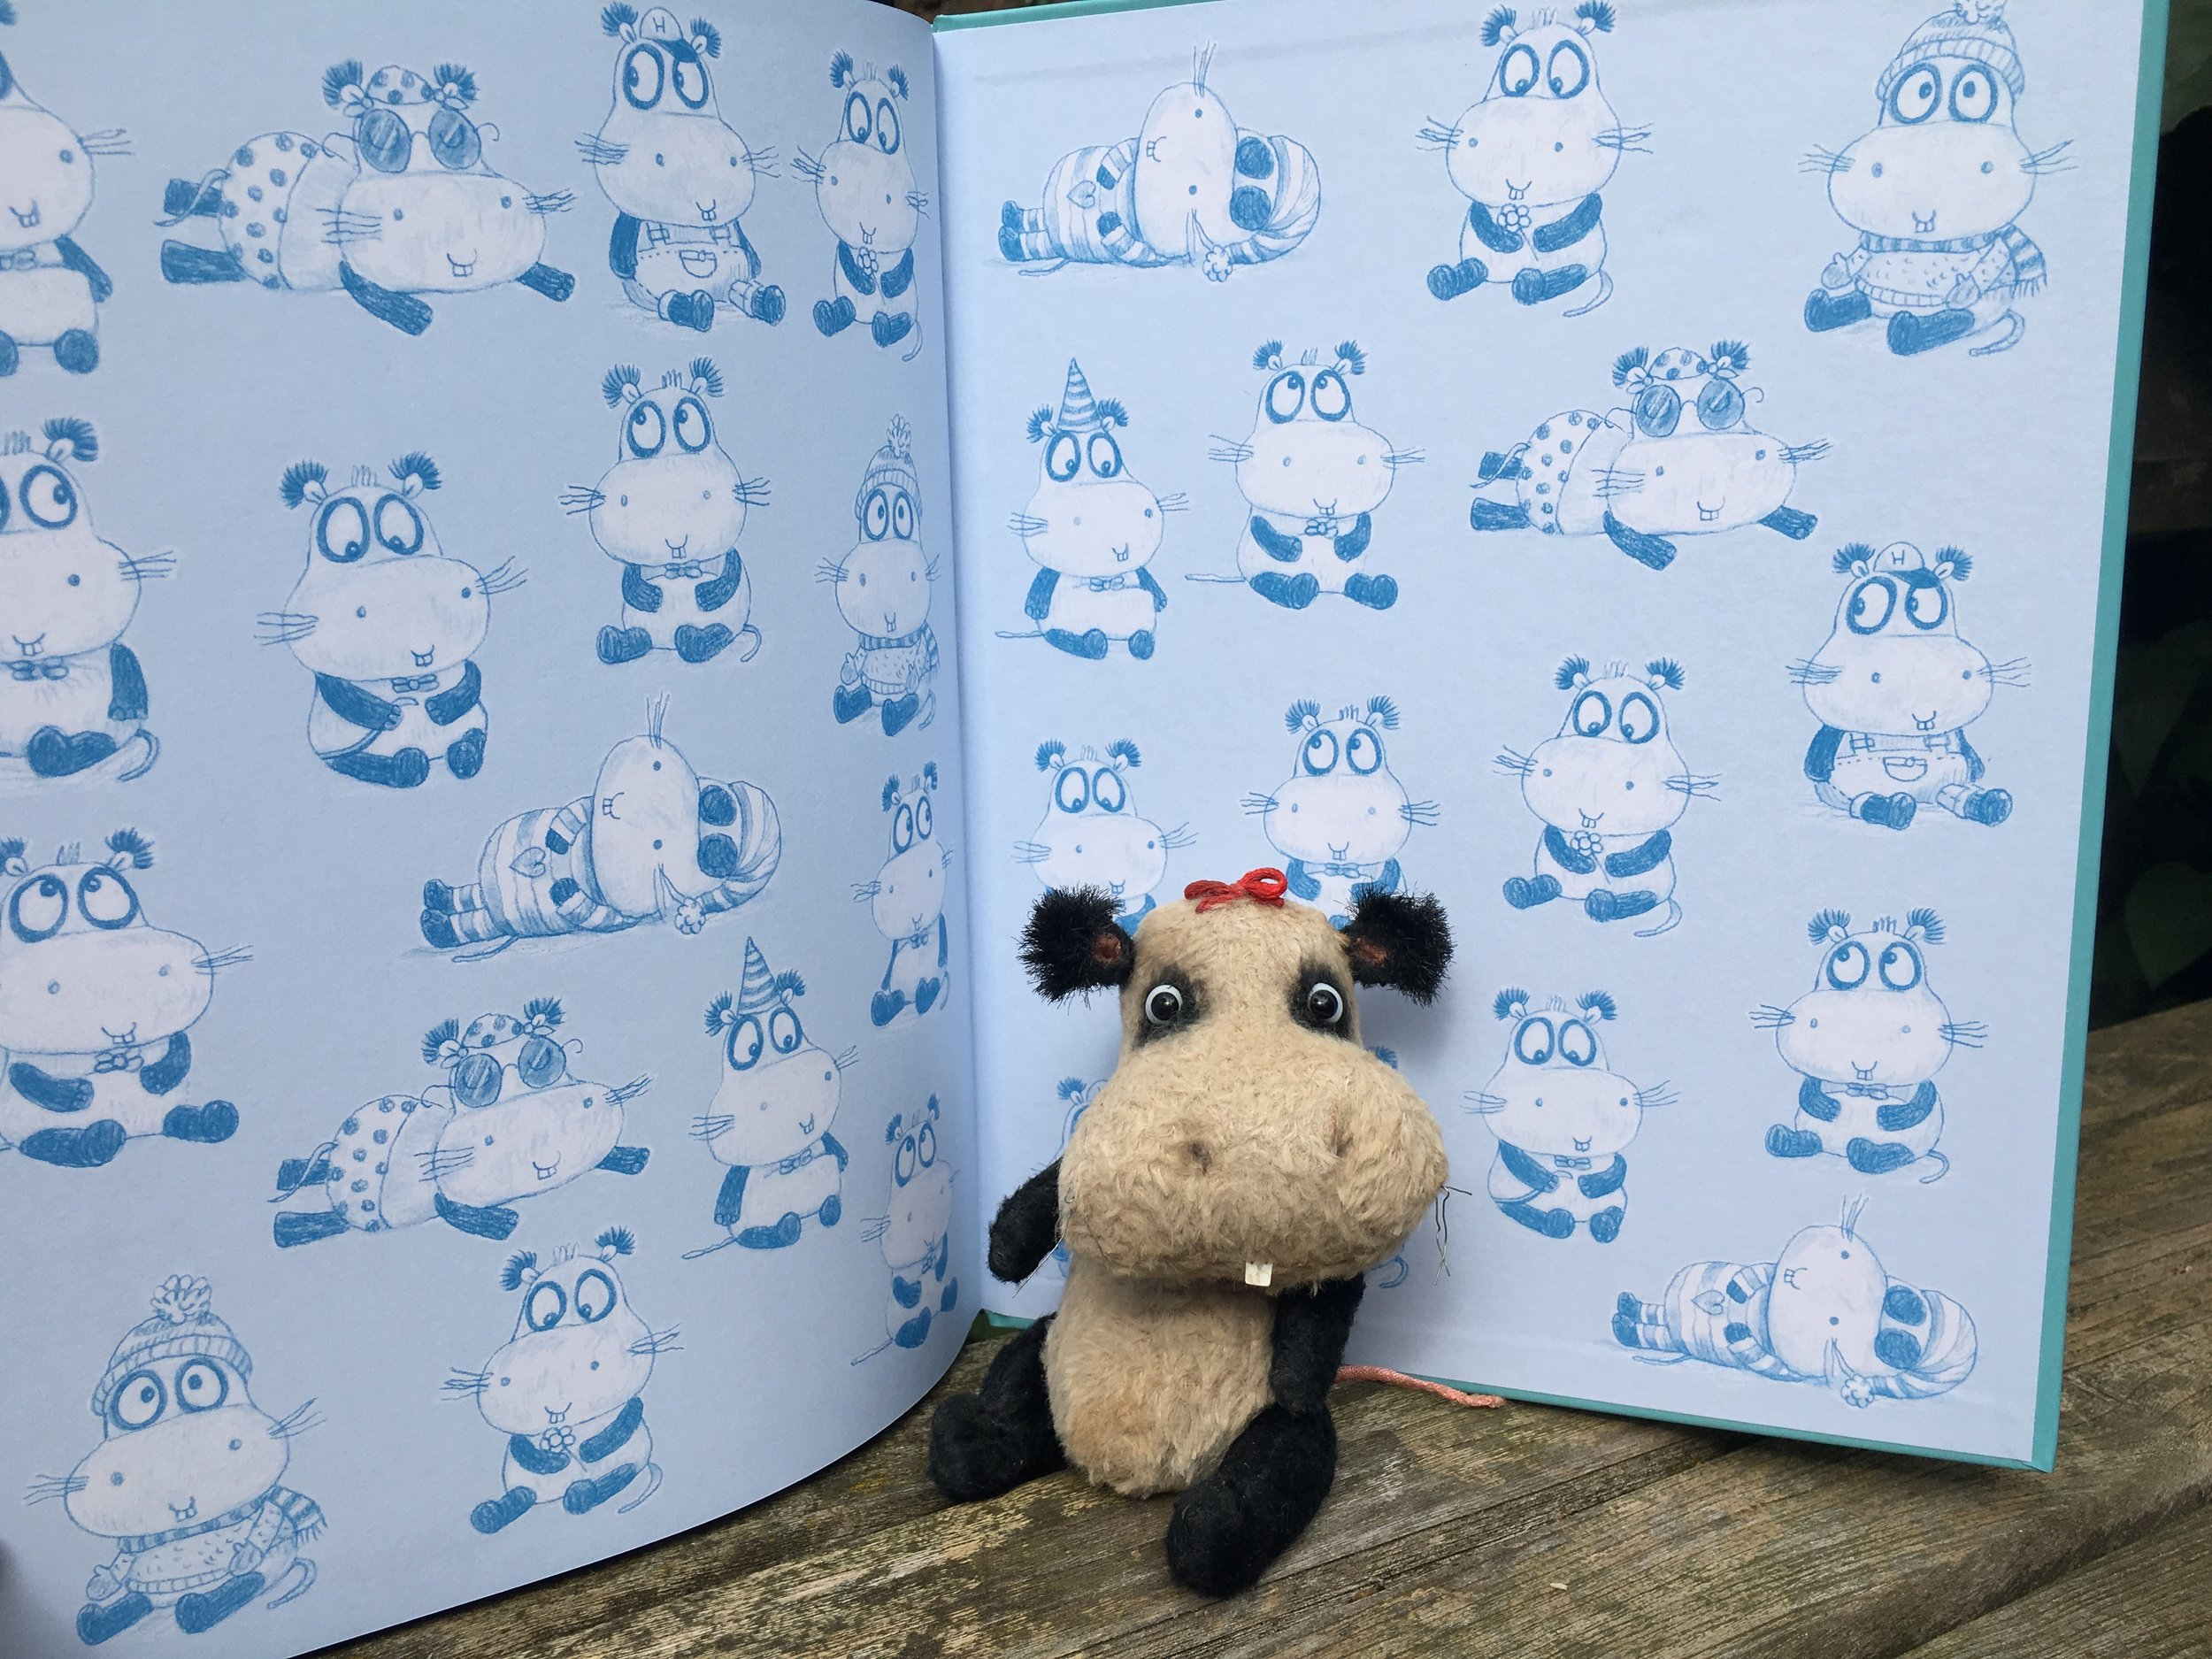 Endpapers for  The Hippopandamouse  .  Toy Hippopandamouse made by Olga Skavysh.